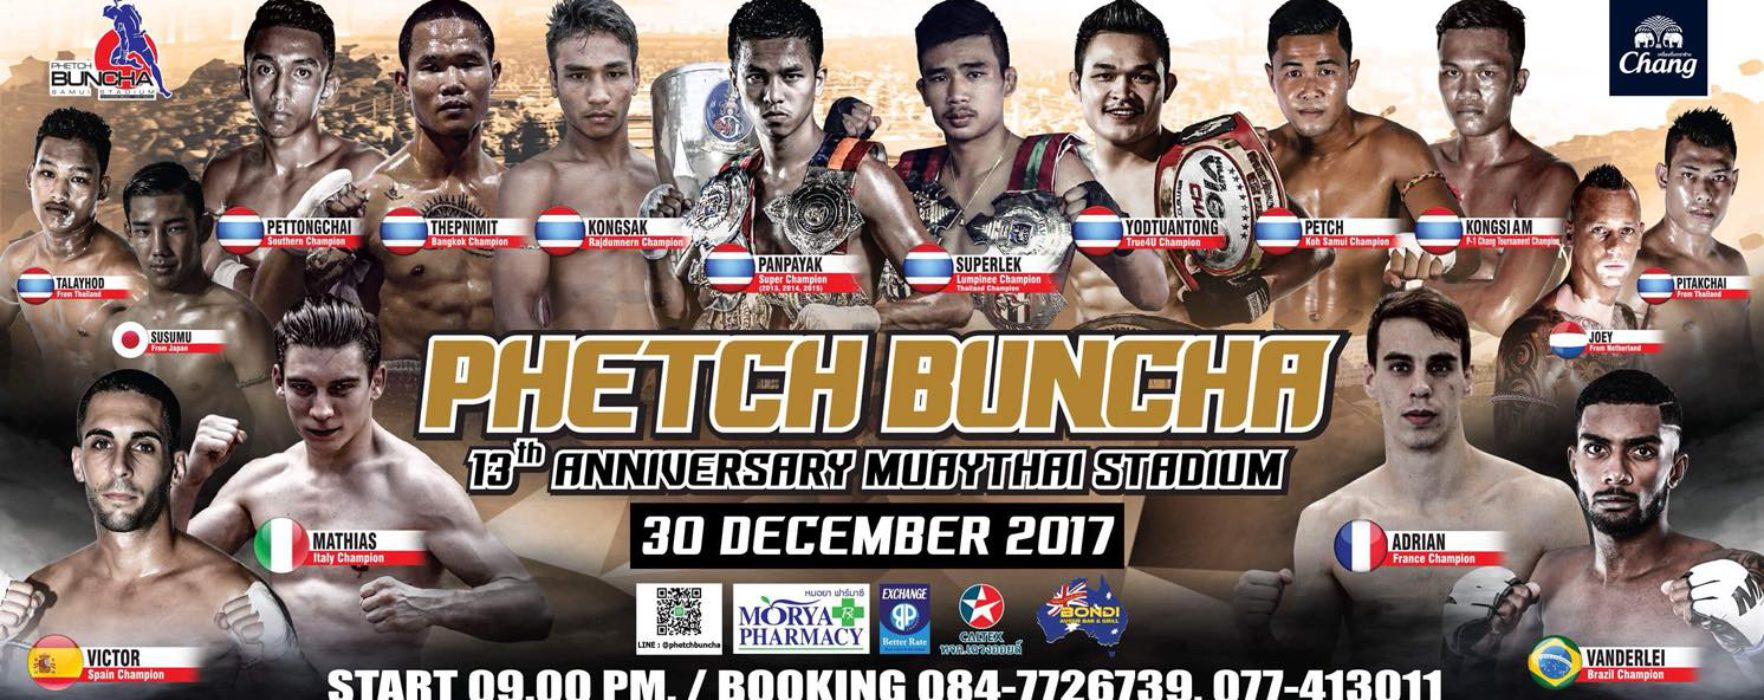 Huge Bangkok Promotion in Samui featuring Panpayak, Superlek, Kongsak and Mathias